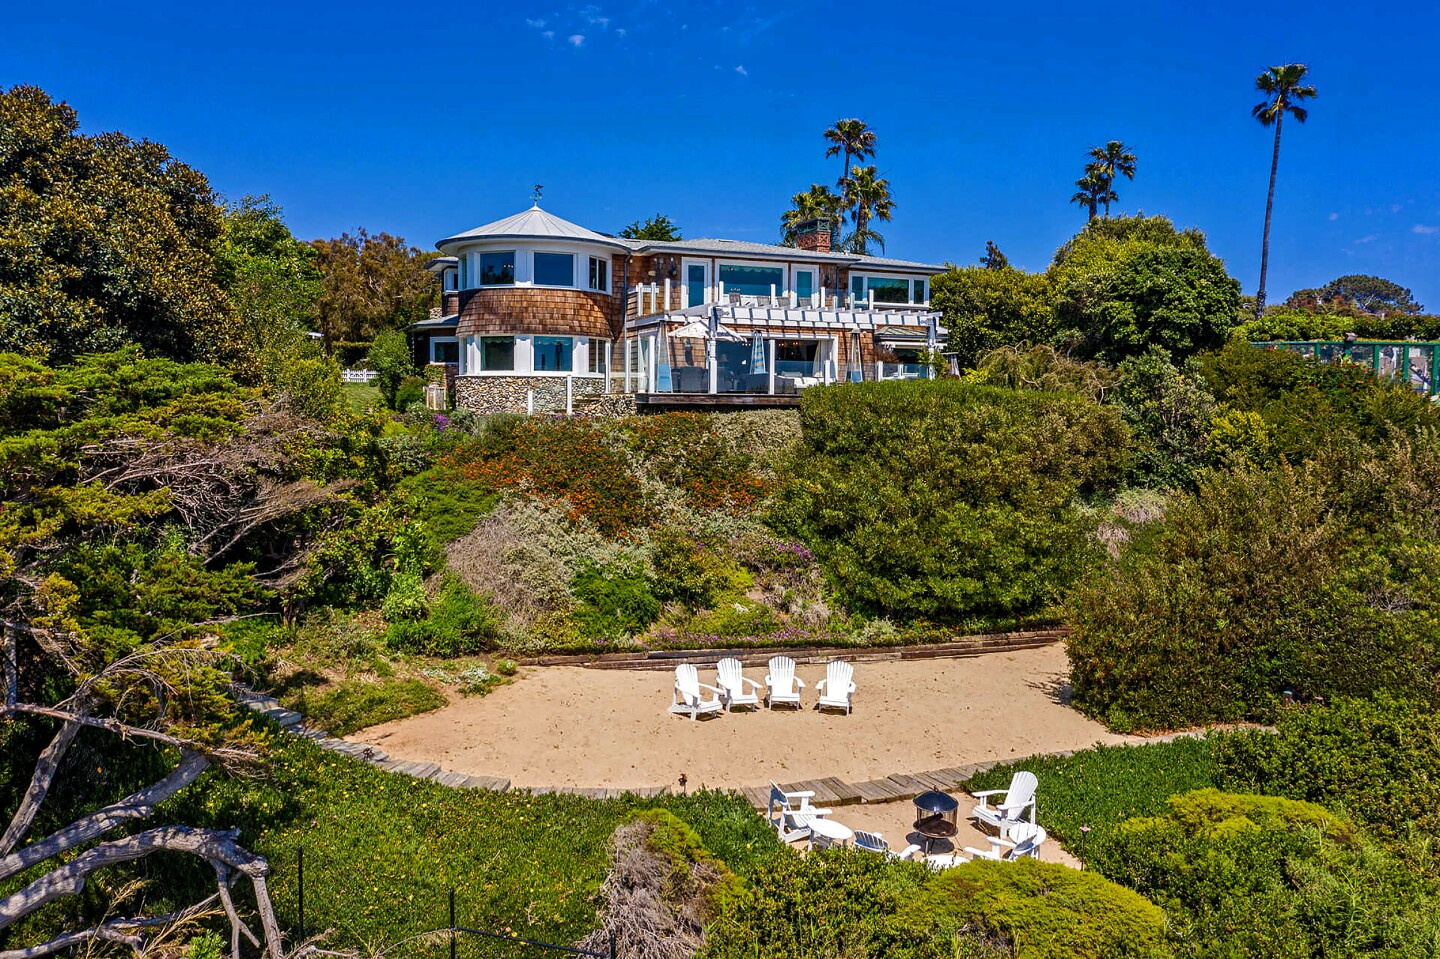 $17.5 million - Malibu Four of the five largest on-market deals in October came near the coast, including this Cape Cod that traded hands for $17.5 million on a bluff in Malibu's Point Dume.Records show the home was owned by Wendy Hughes, ex-wife of billionaire Public Storage founder B. Wayne Hughes. She paid $10.7 million for the property in 2012.The coastal compound spans an acre and includes a main house clad in wood shingles, guest cottage, swimming pool and multiple lawns dotted with fruit trees and flower-laden trellises. Scenic decks line the backside of the home, descending to a private sandy beach with gated access to the ocean below.Sandro Dazzan and Cooper Mount of the Agency held the listing. Ellen Francisco of Coldwell Banker Realty represented the buyer.